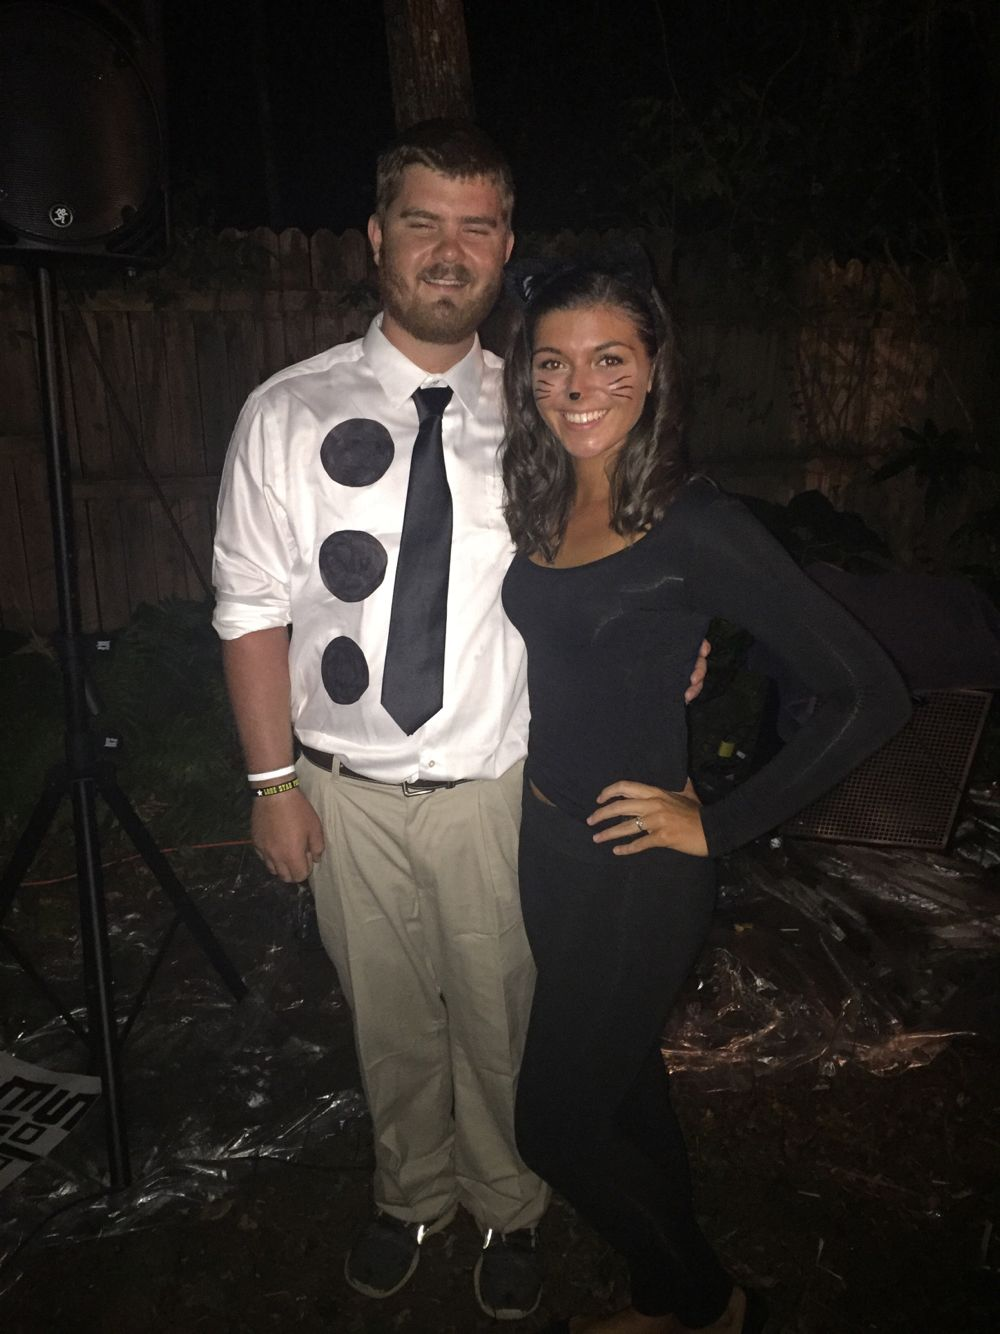 3 hole punch jim and pam as a cat #theoffice #jimandpam #halloween